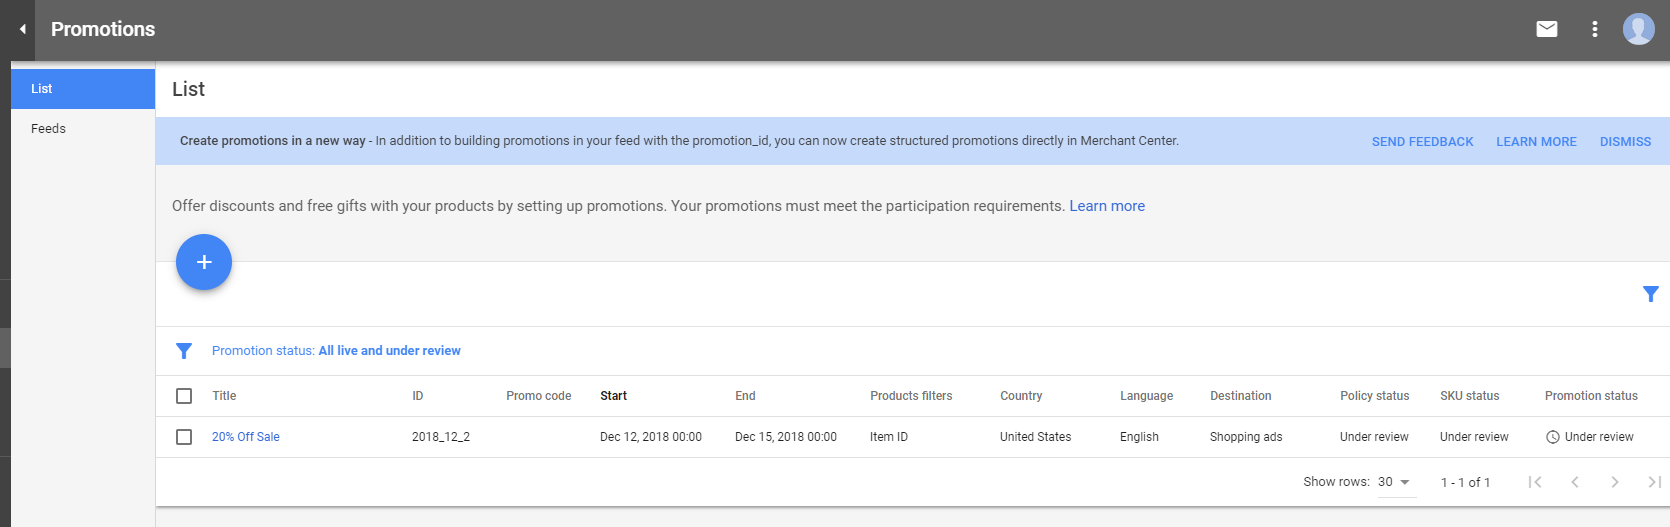 Once set up, your promotions should be listed inside the Google Merchant Center.